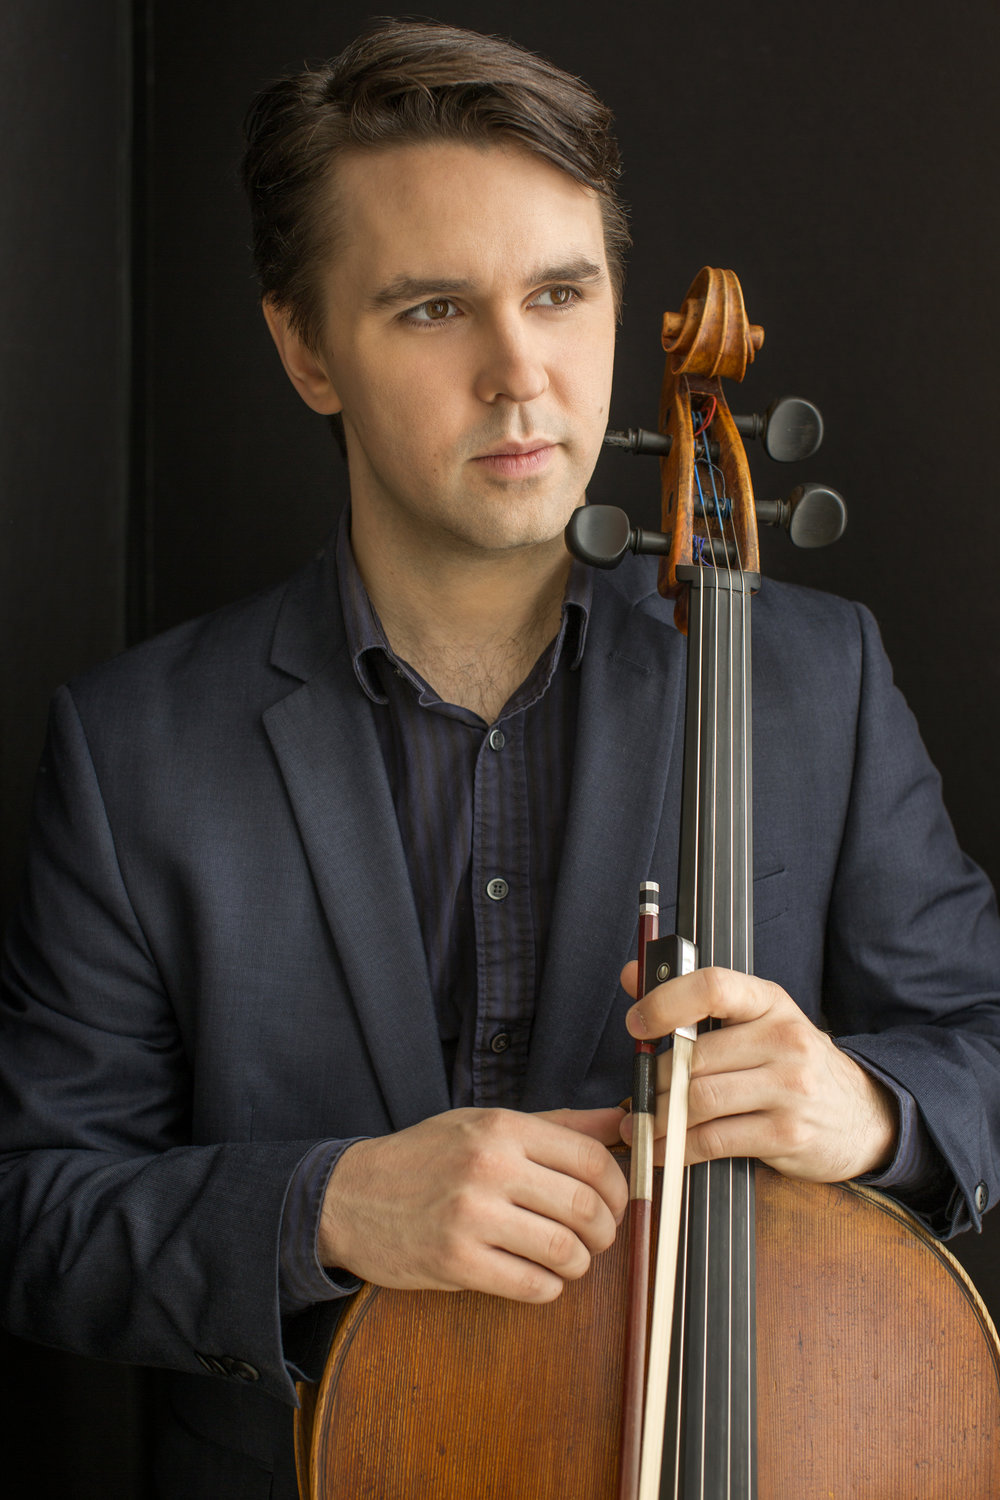 ANDREW JANSS Director of Prison Outreach& Program Development - The New York Times has hailed cellist Andrew Janss for his